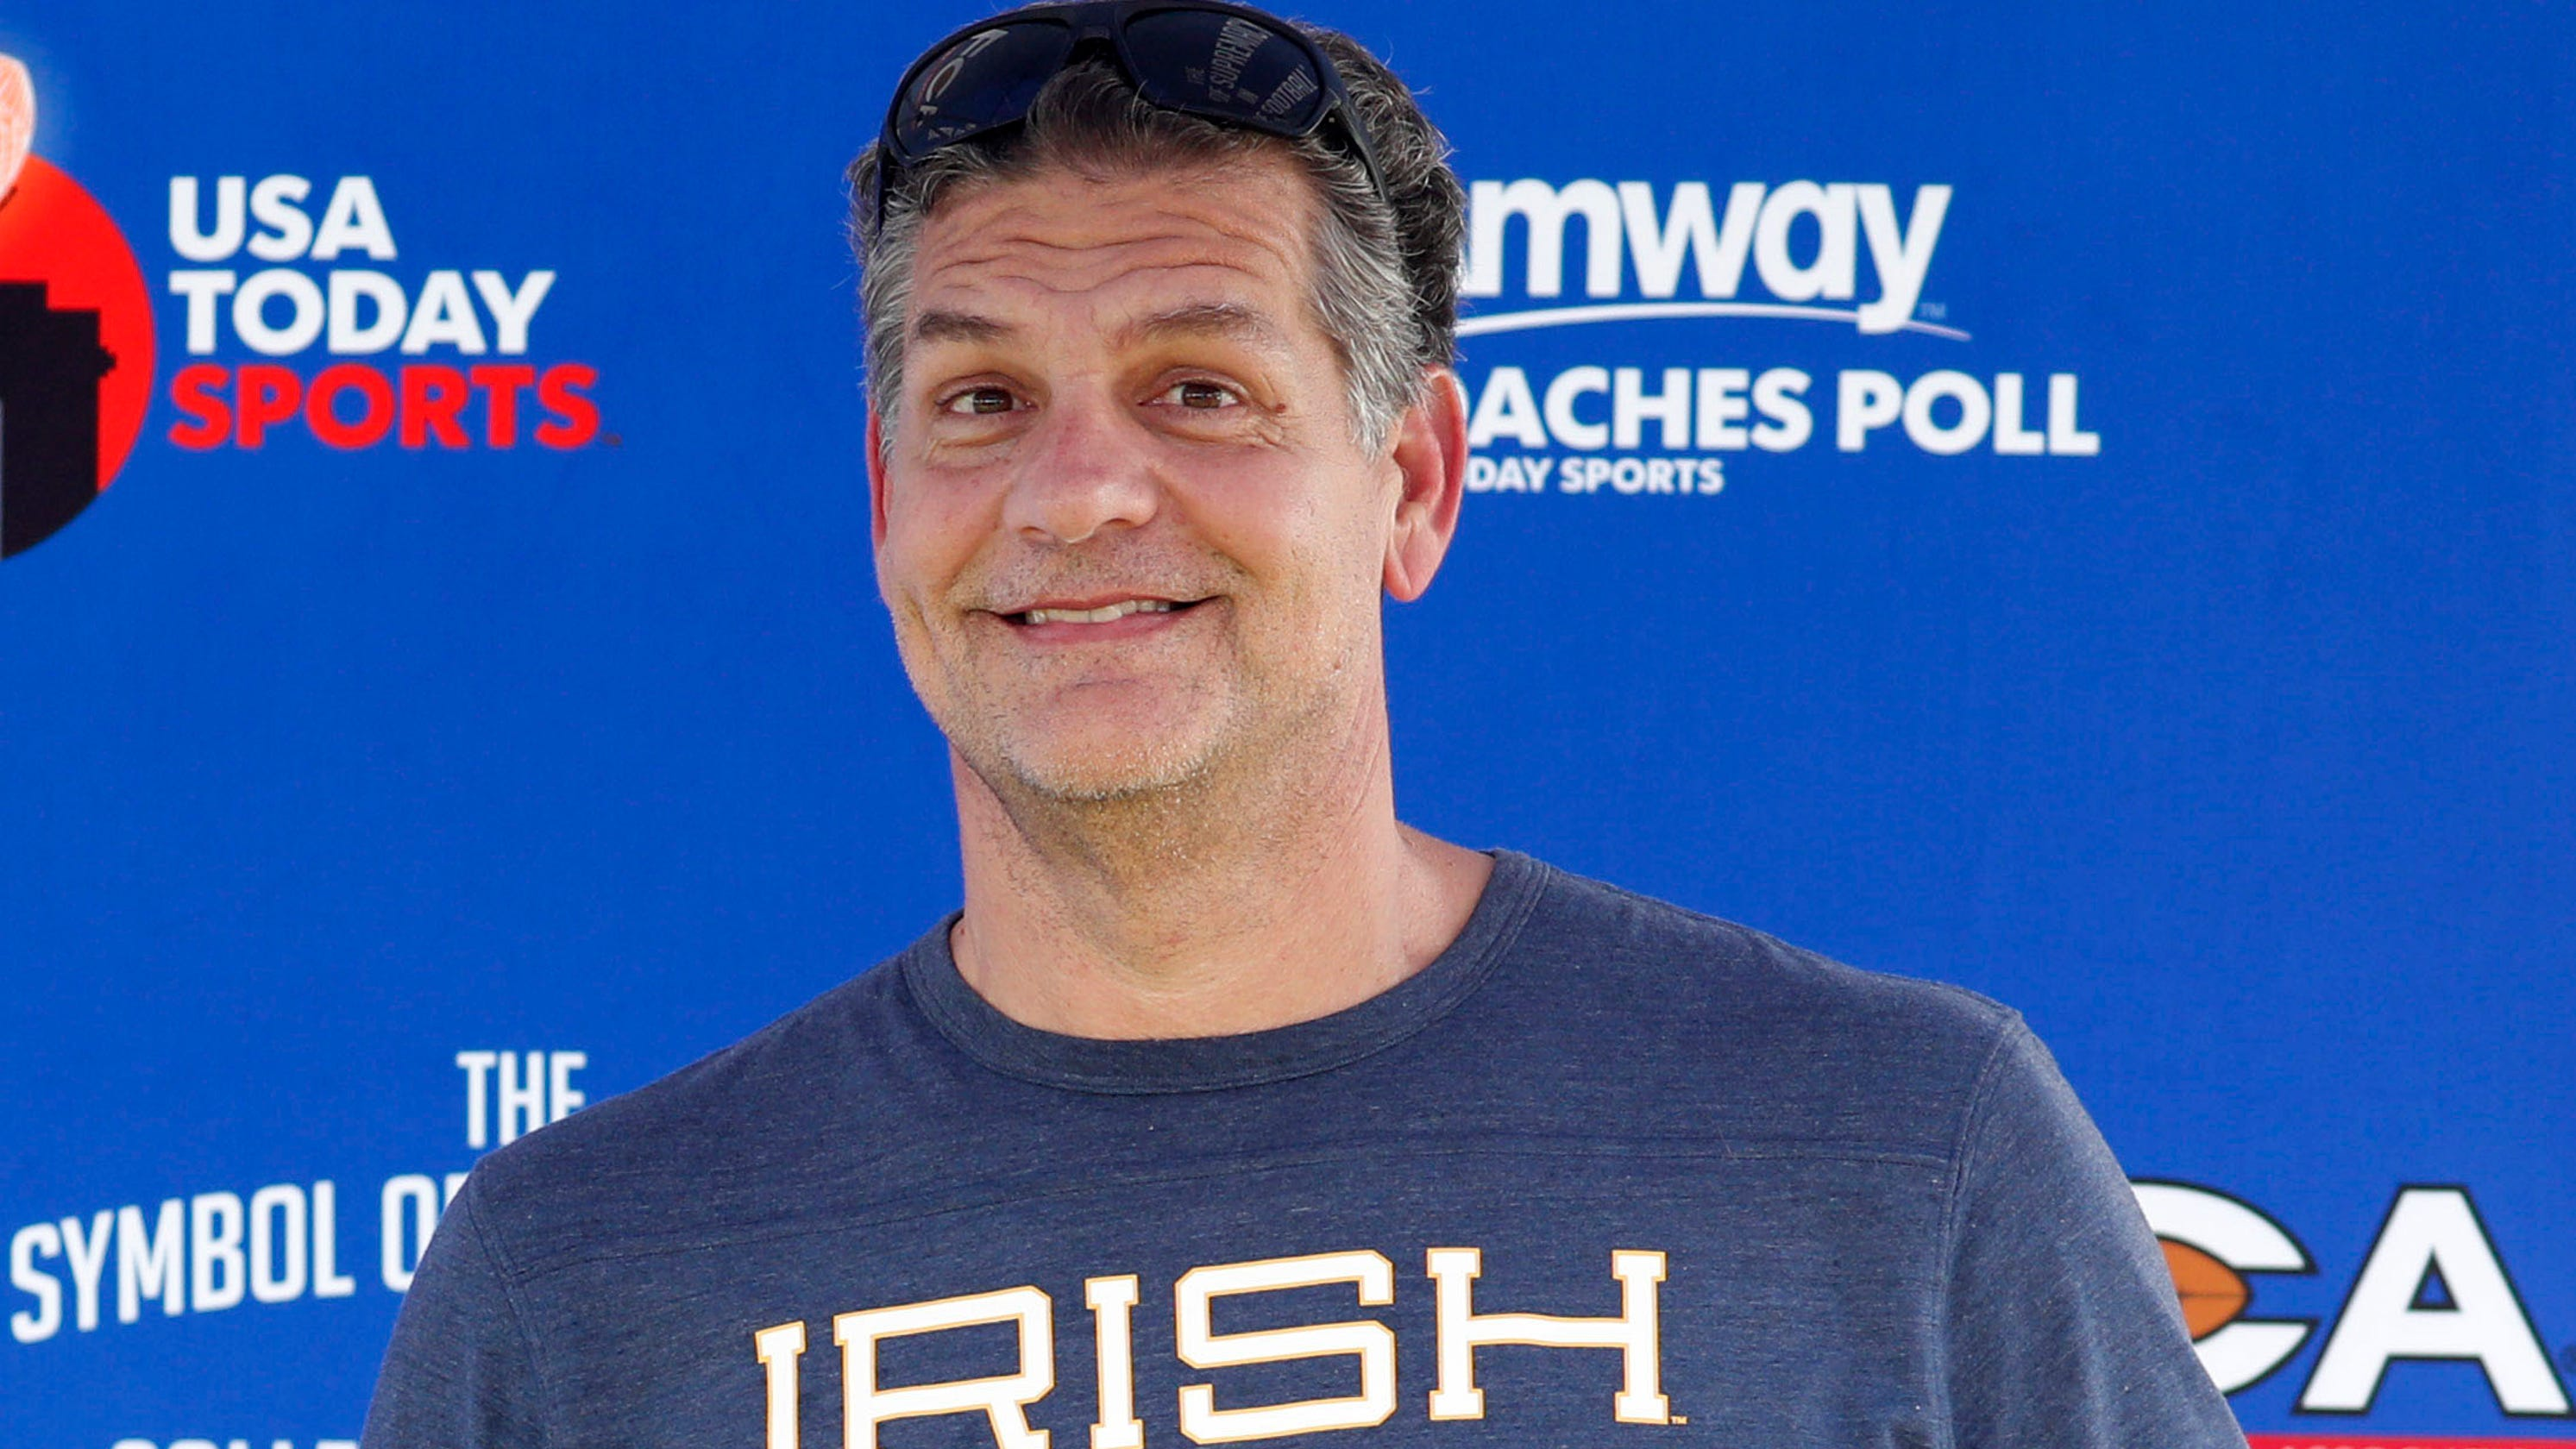 ESPN's Mike Golic ends 22-year run on morning radio show